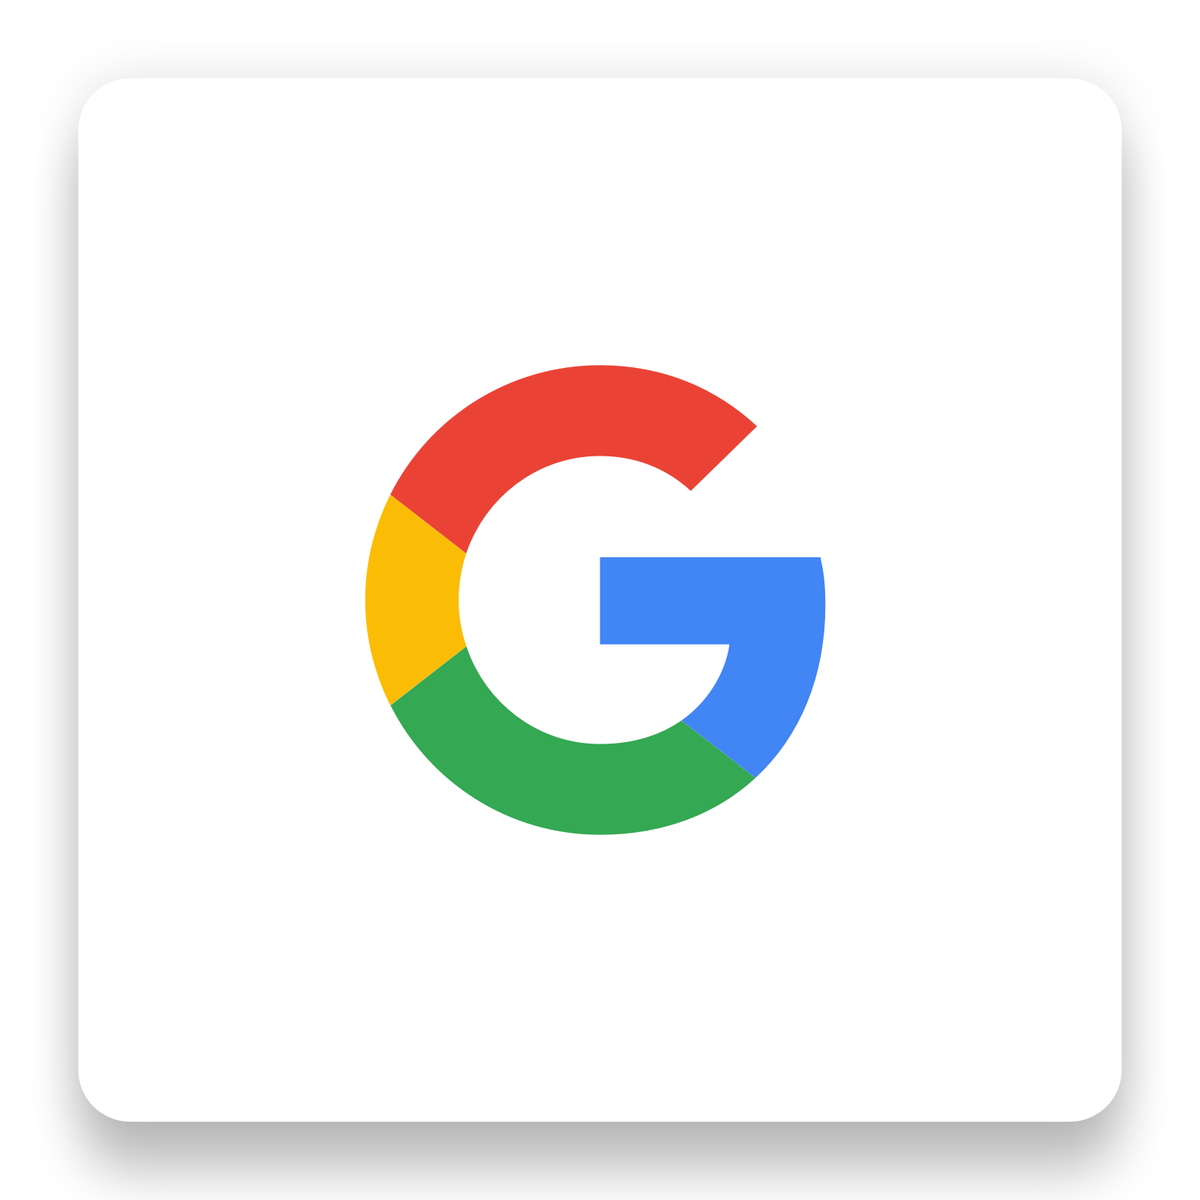 Google has a new logo, so we're rolling out new @Google and @GooglePlus icons across the web.